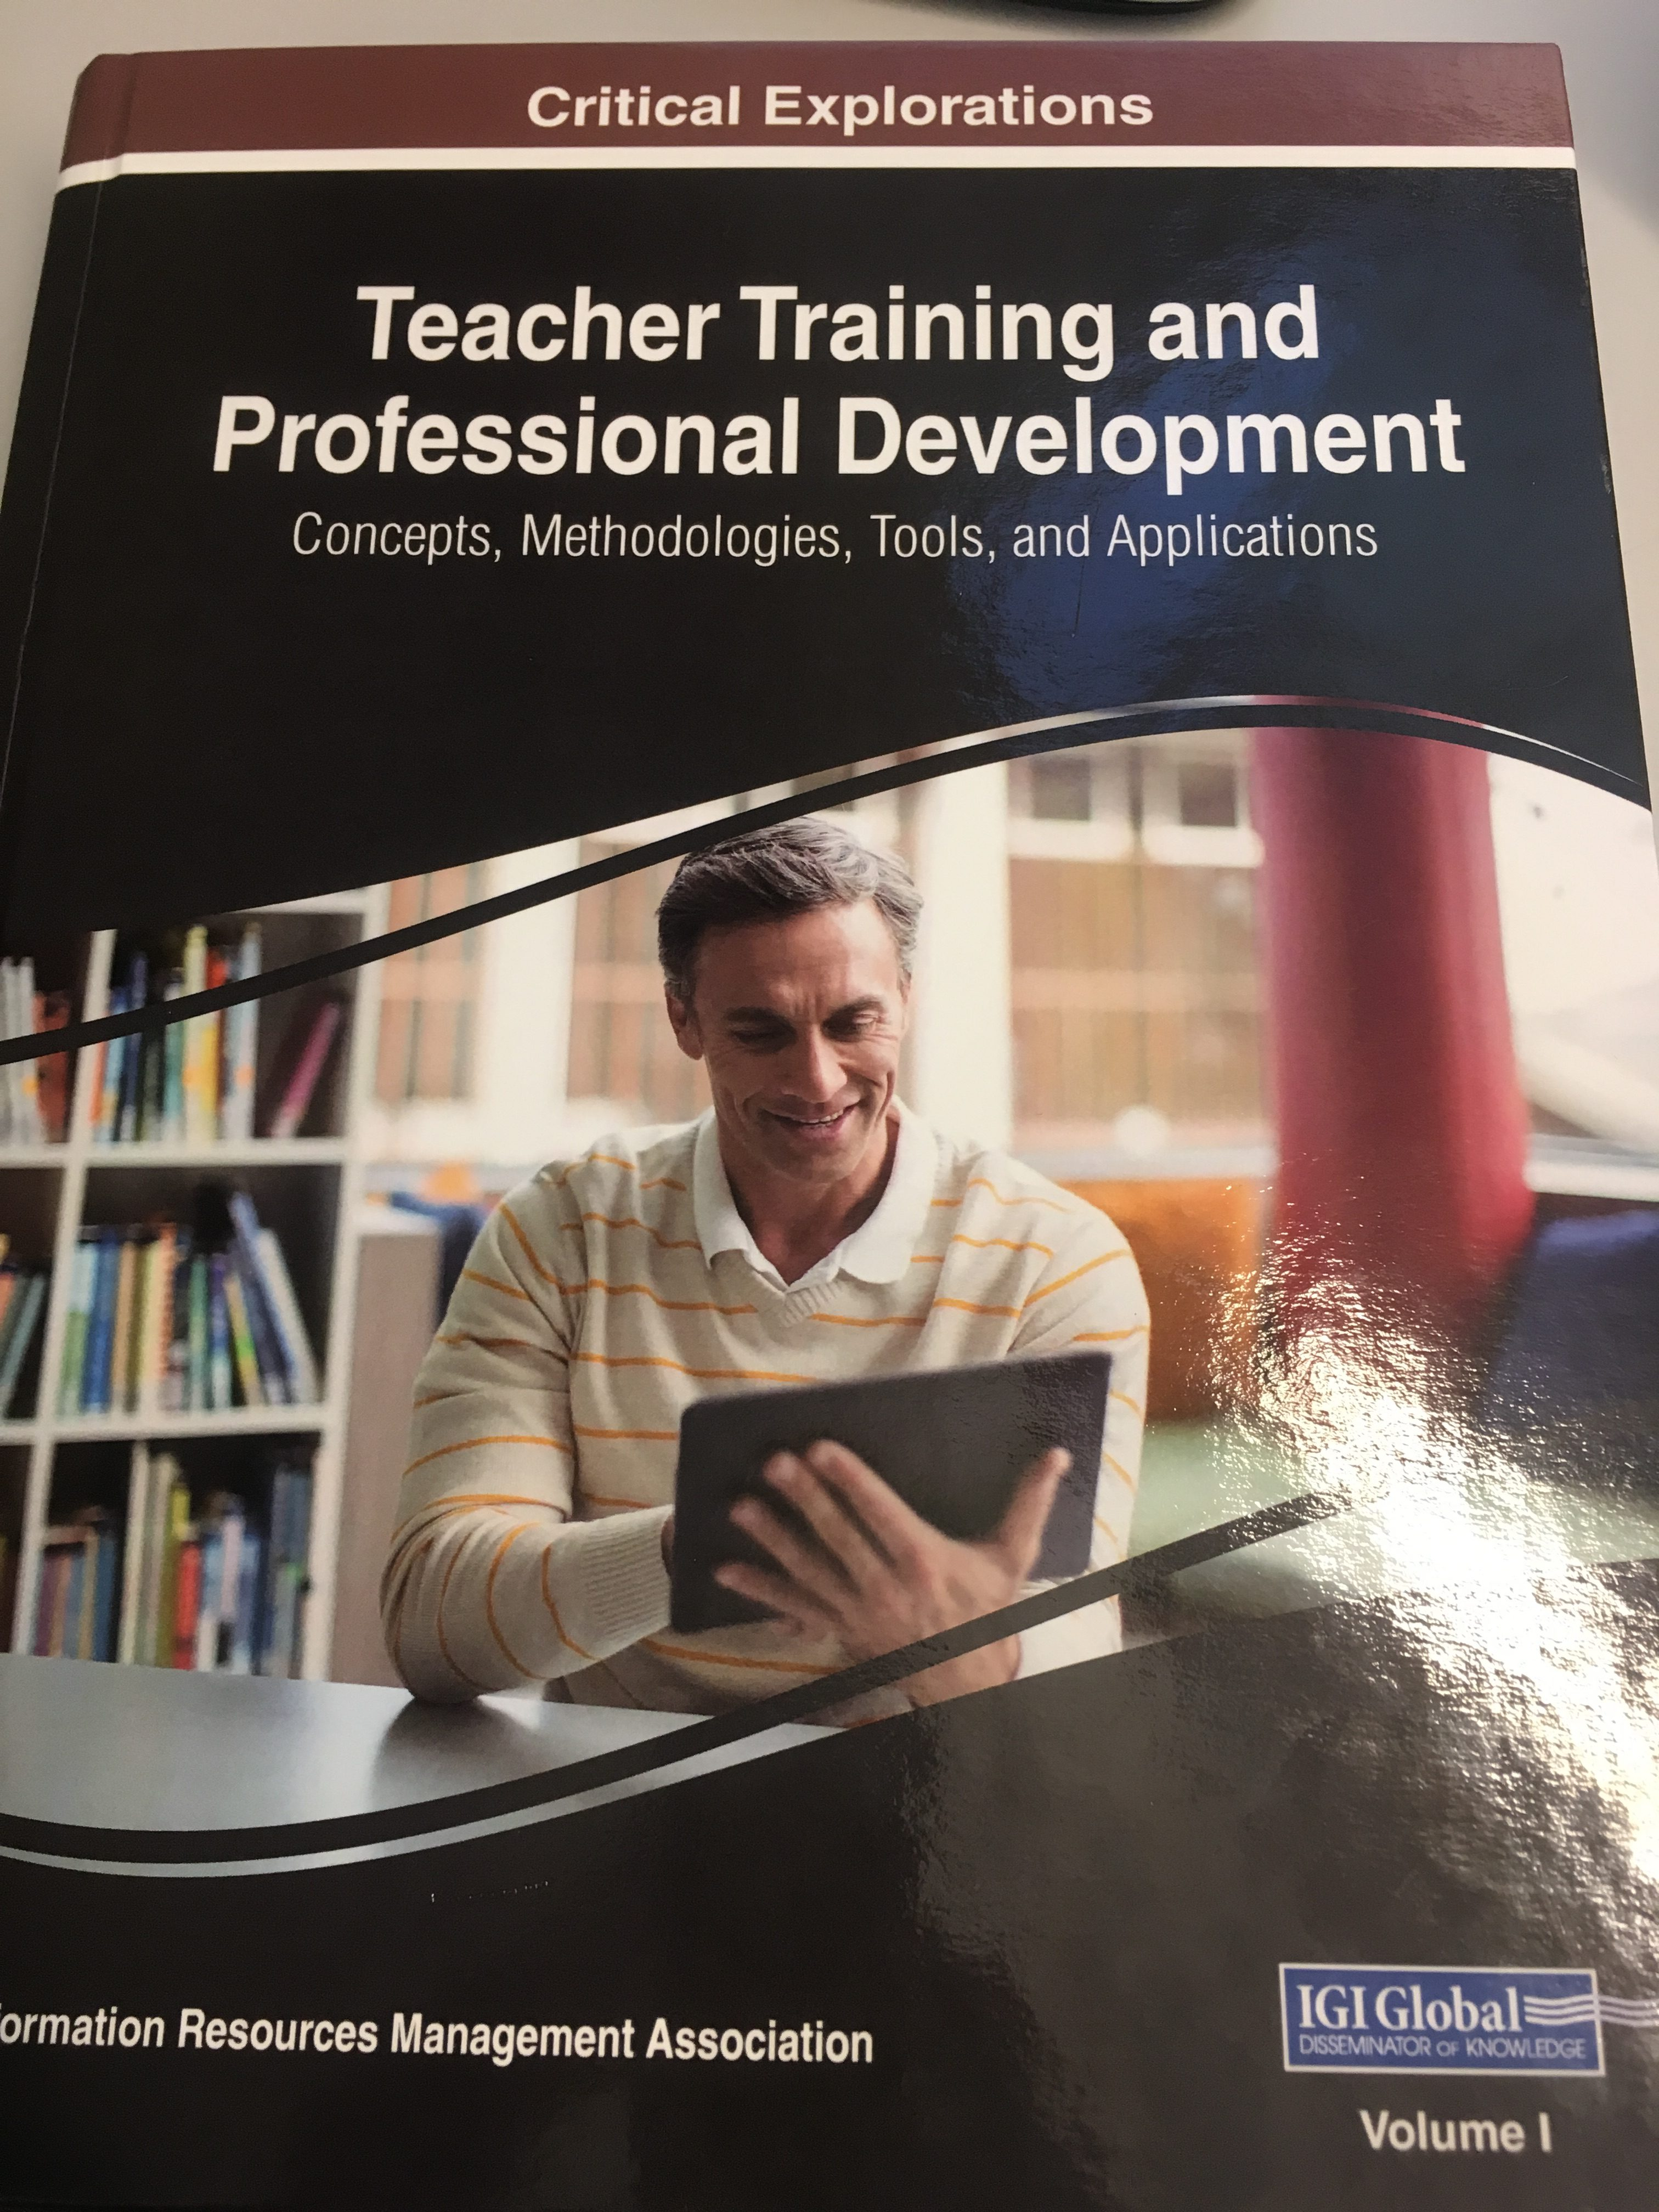 Teacher training and professional development: concepts, methodologies, tools, and applications